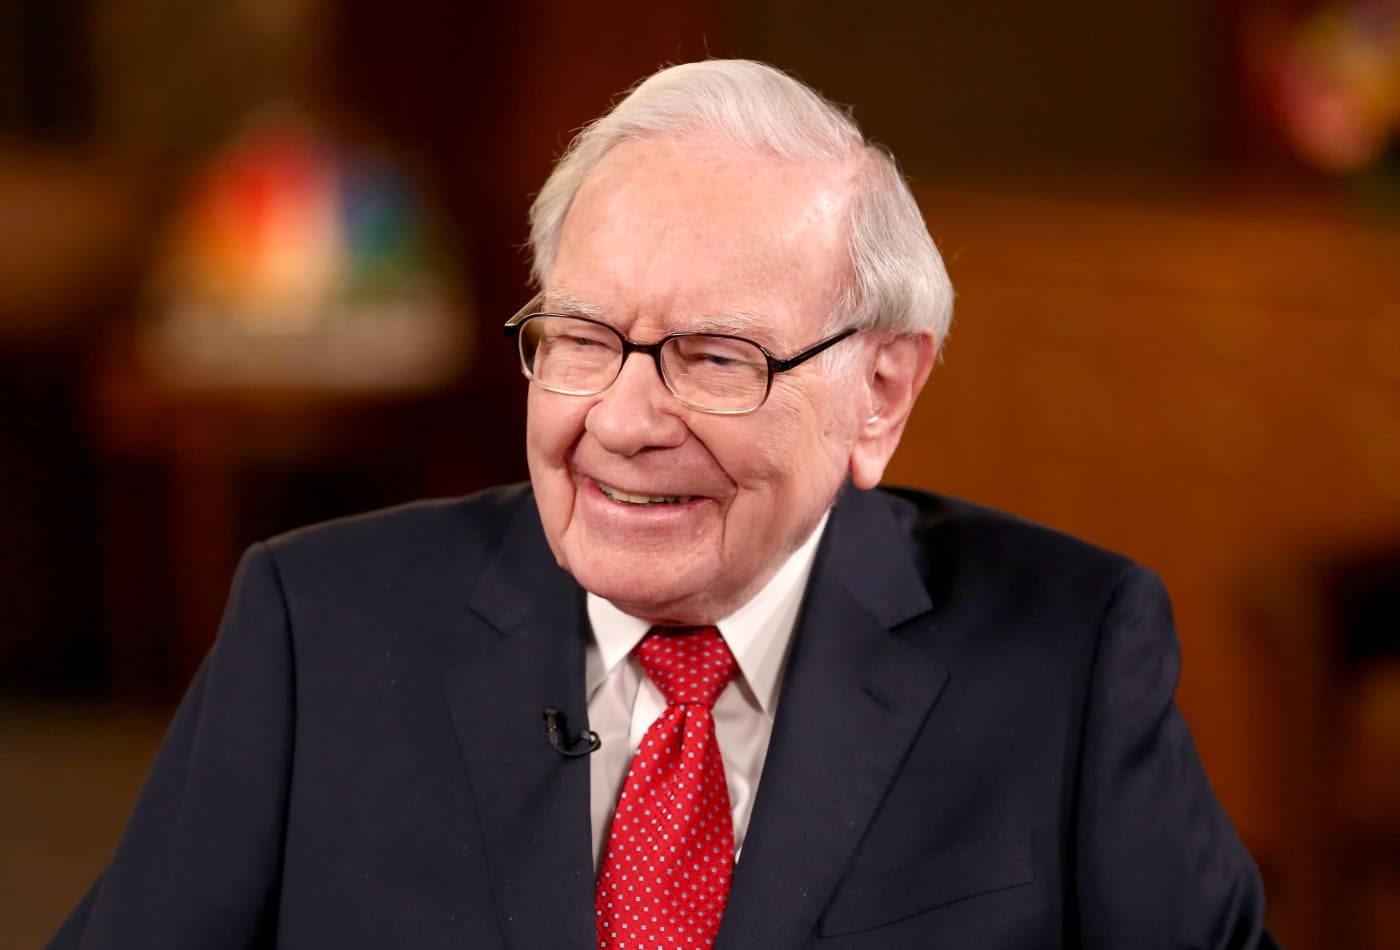 Warren Buffett on Squawk Box–The highlights